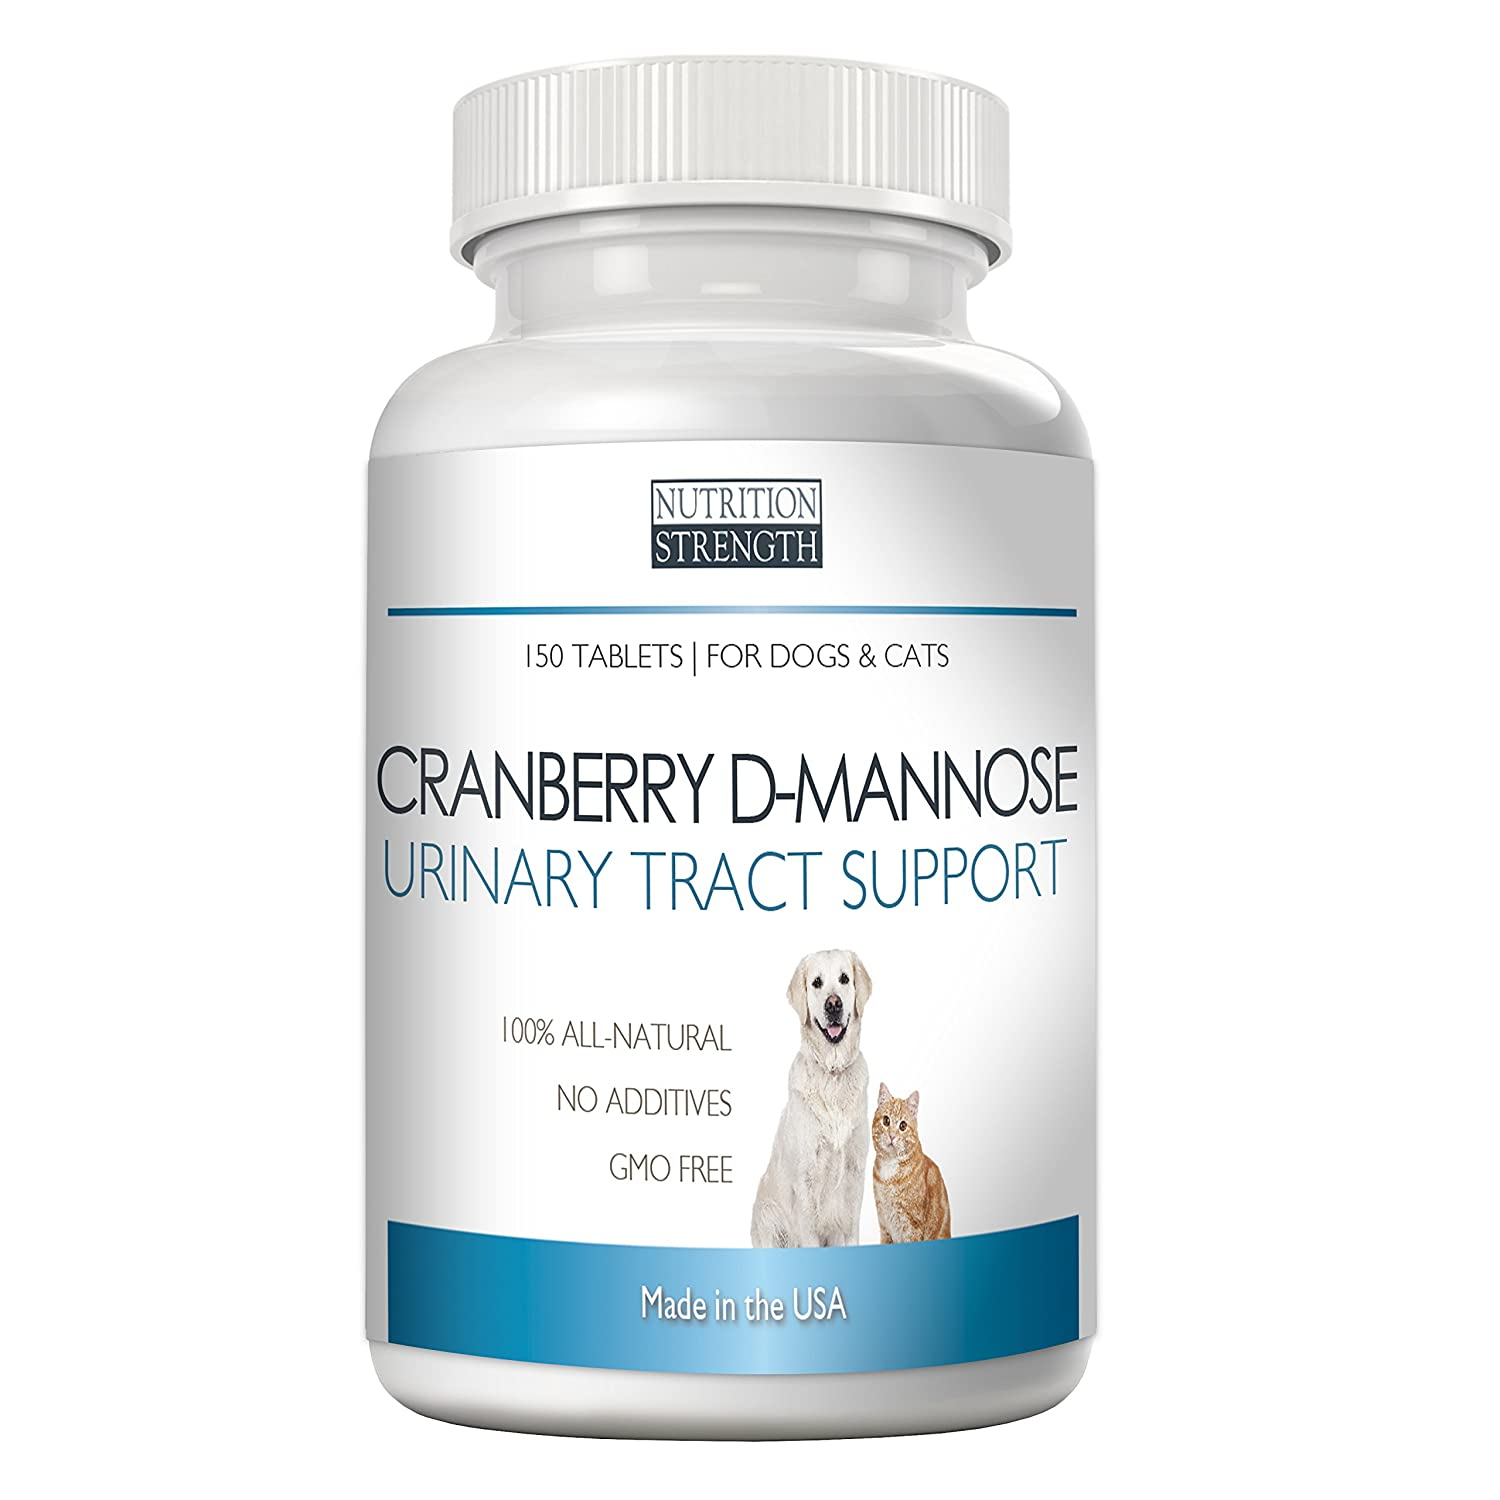 Cranberry D-Mannose Antioxidant, Urinary Tract Support for Dogs and Cats, Prevents and Eliminates UTI, Nutrition Strength, 150 Chewable Tablets